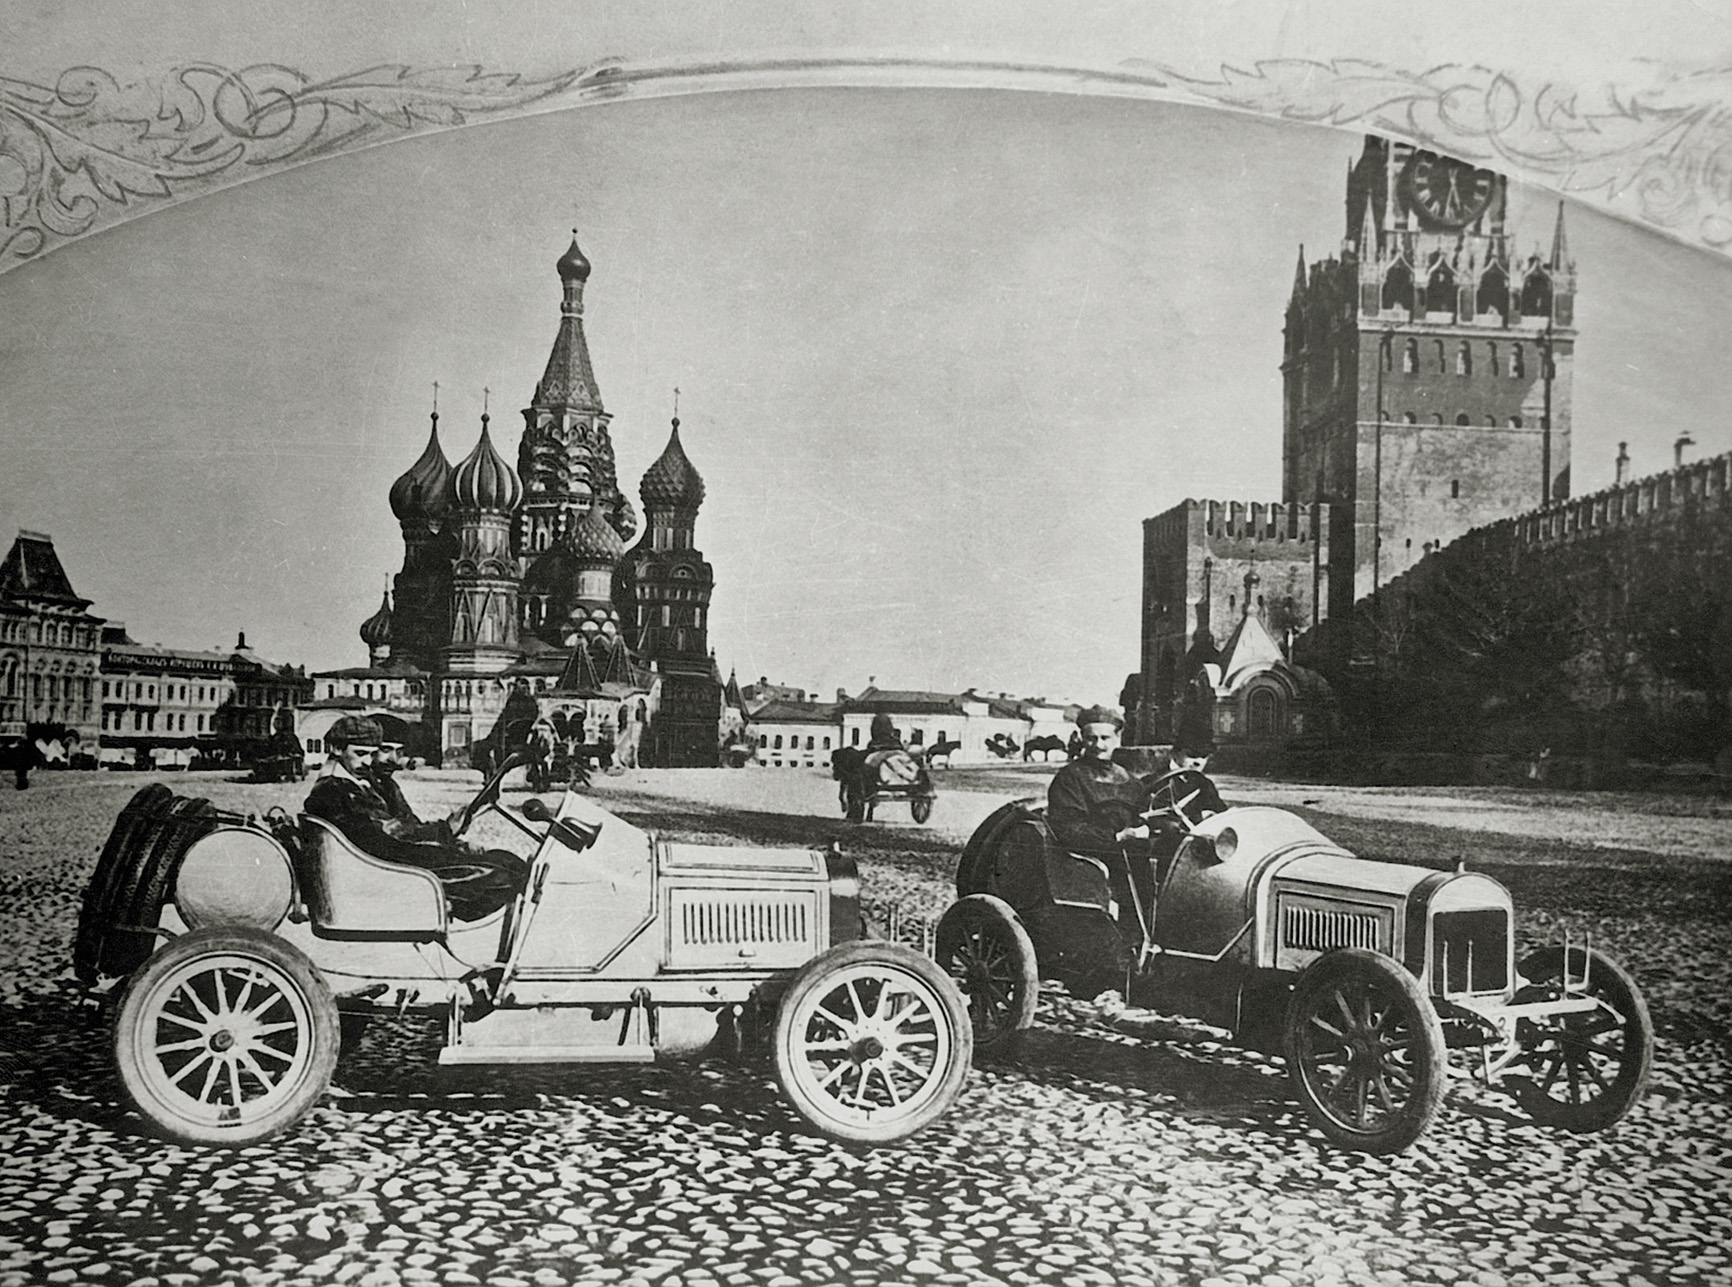 Laurin & Klement FC from 1908: The first major motor racing successes of automobiles from Mladá Boleslav - Image 7